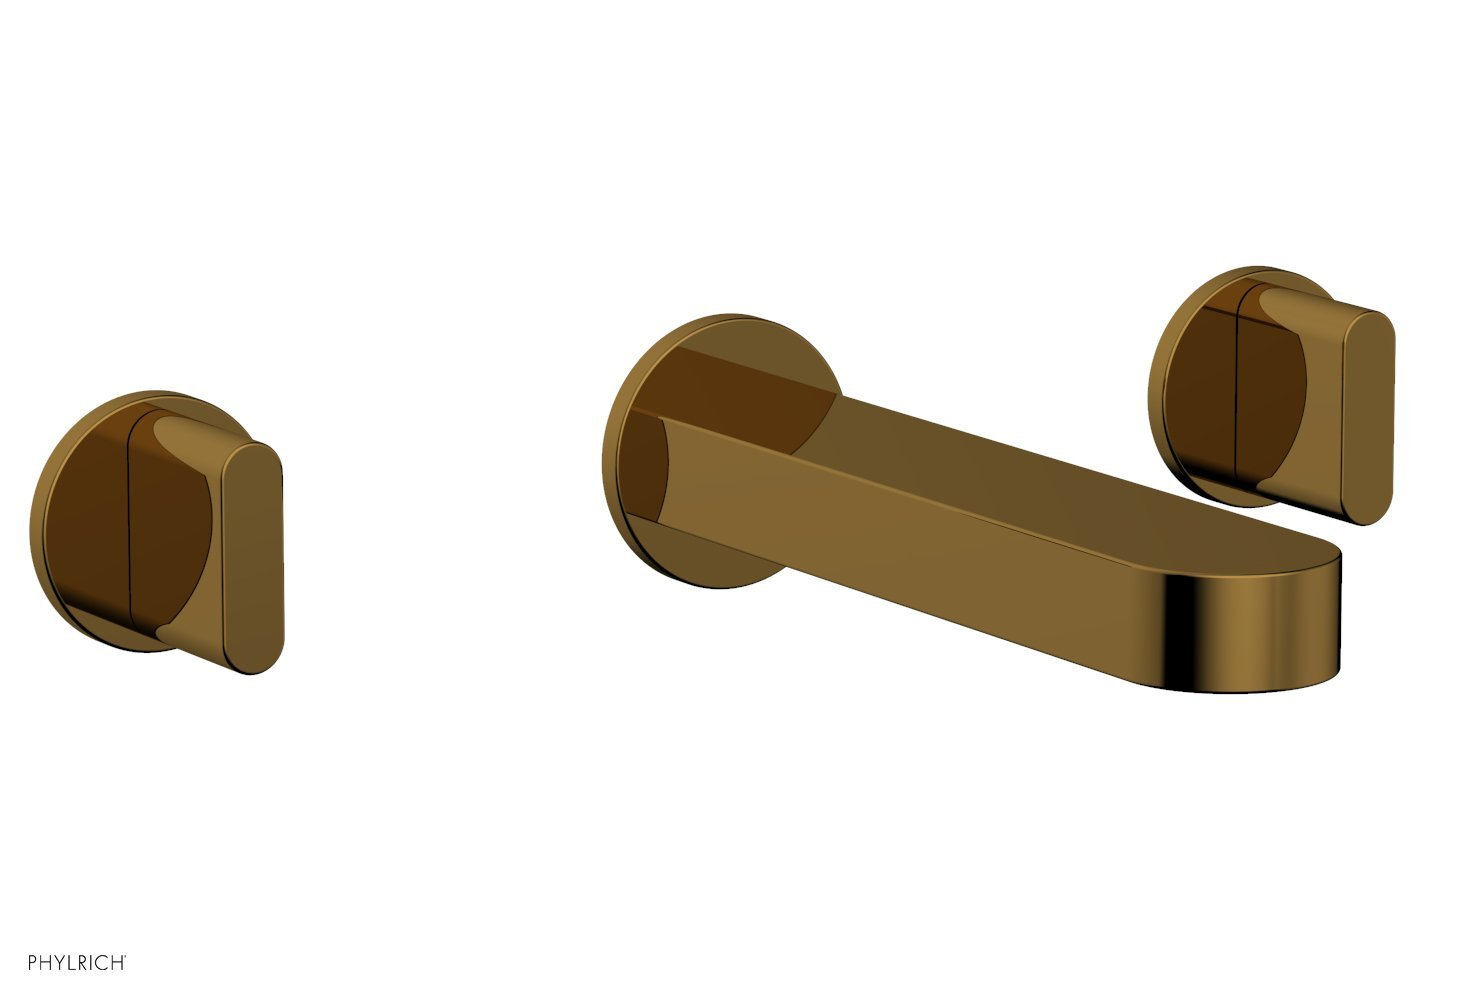 Phylrich 183-56-002 ROND Wall Tub Set - Blade Handles - French Brass